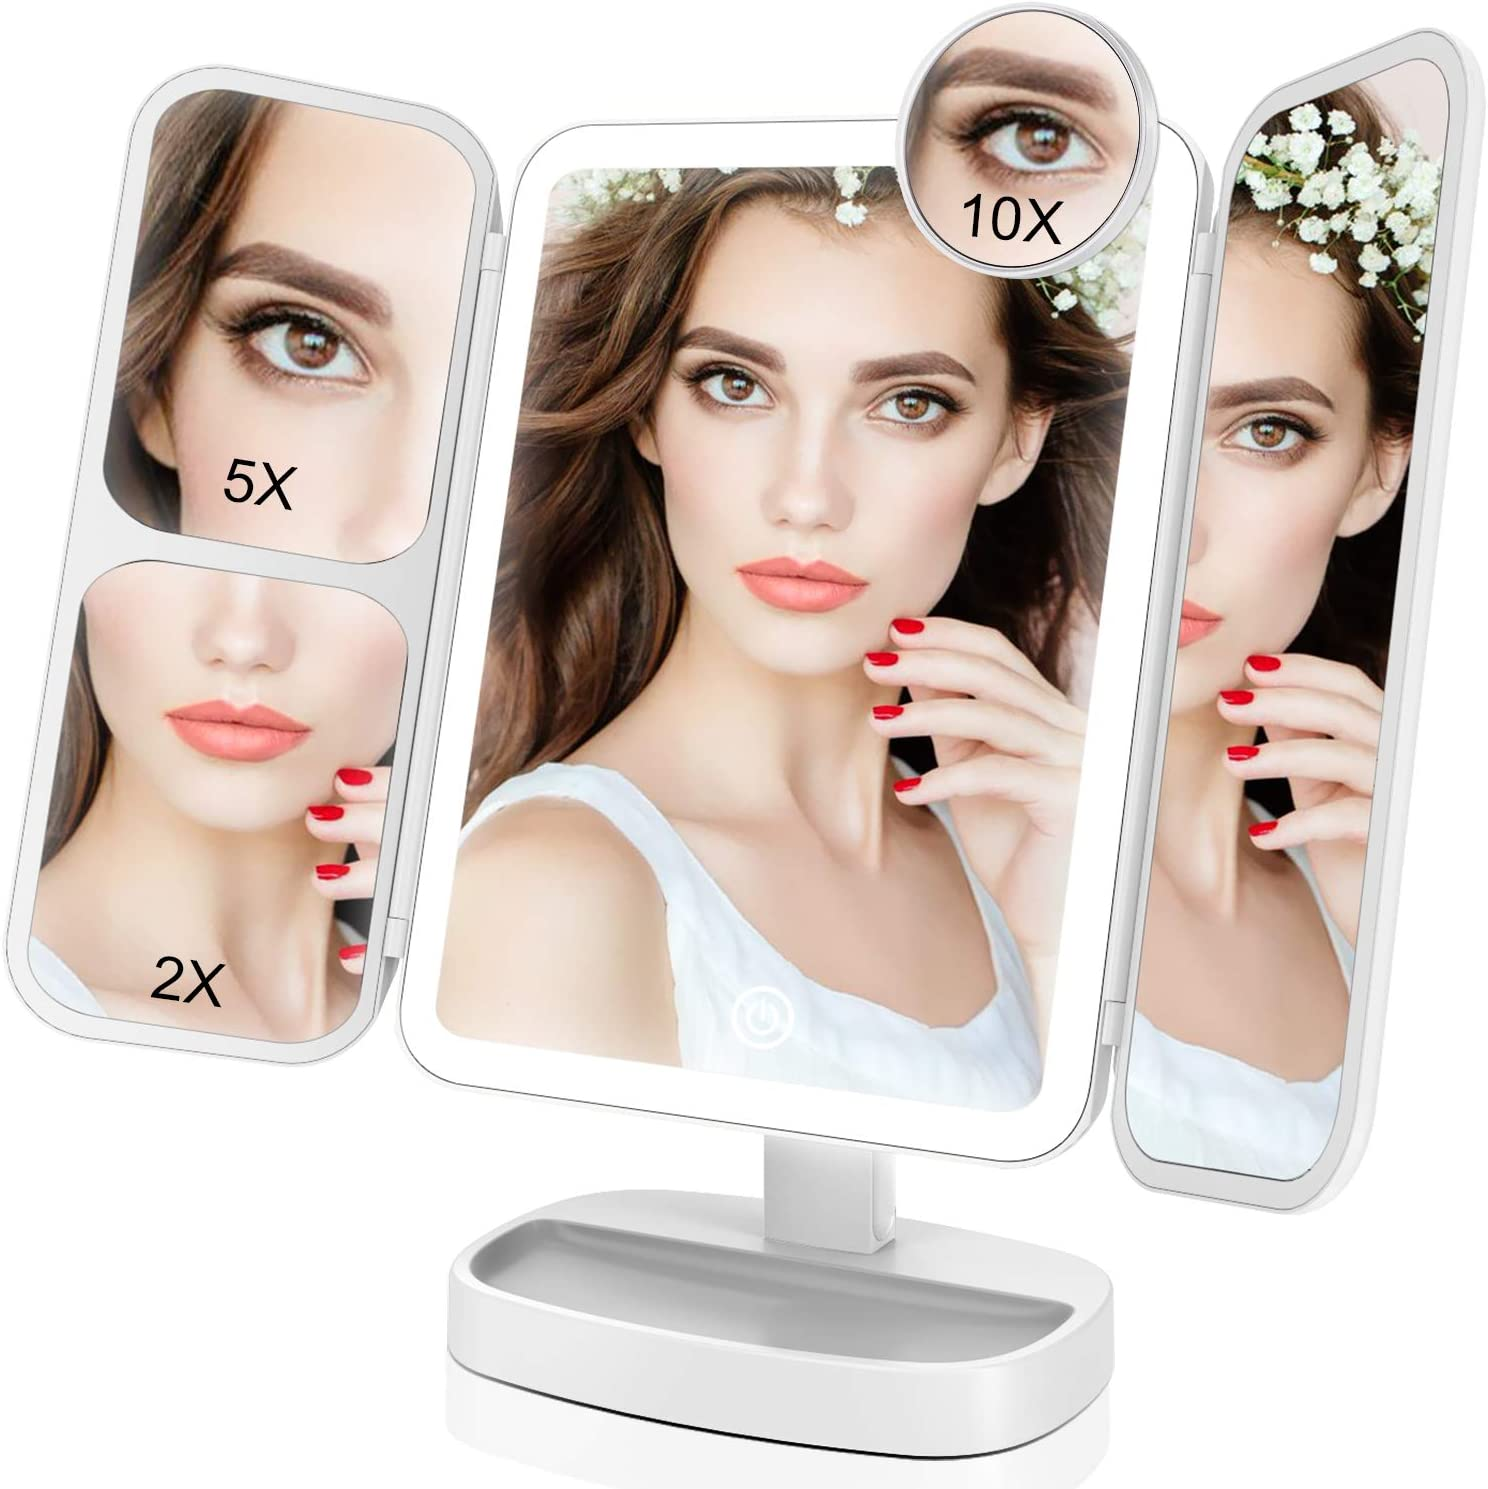 EASEHOLD 1X, 2X, 5X, 10X Lighted Tabletop Makeup Mirror Reviews